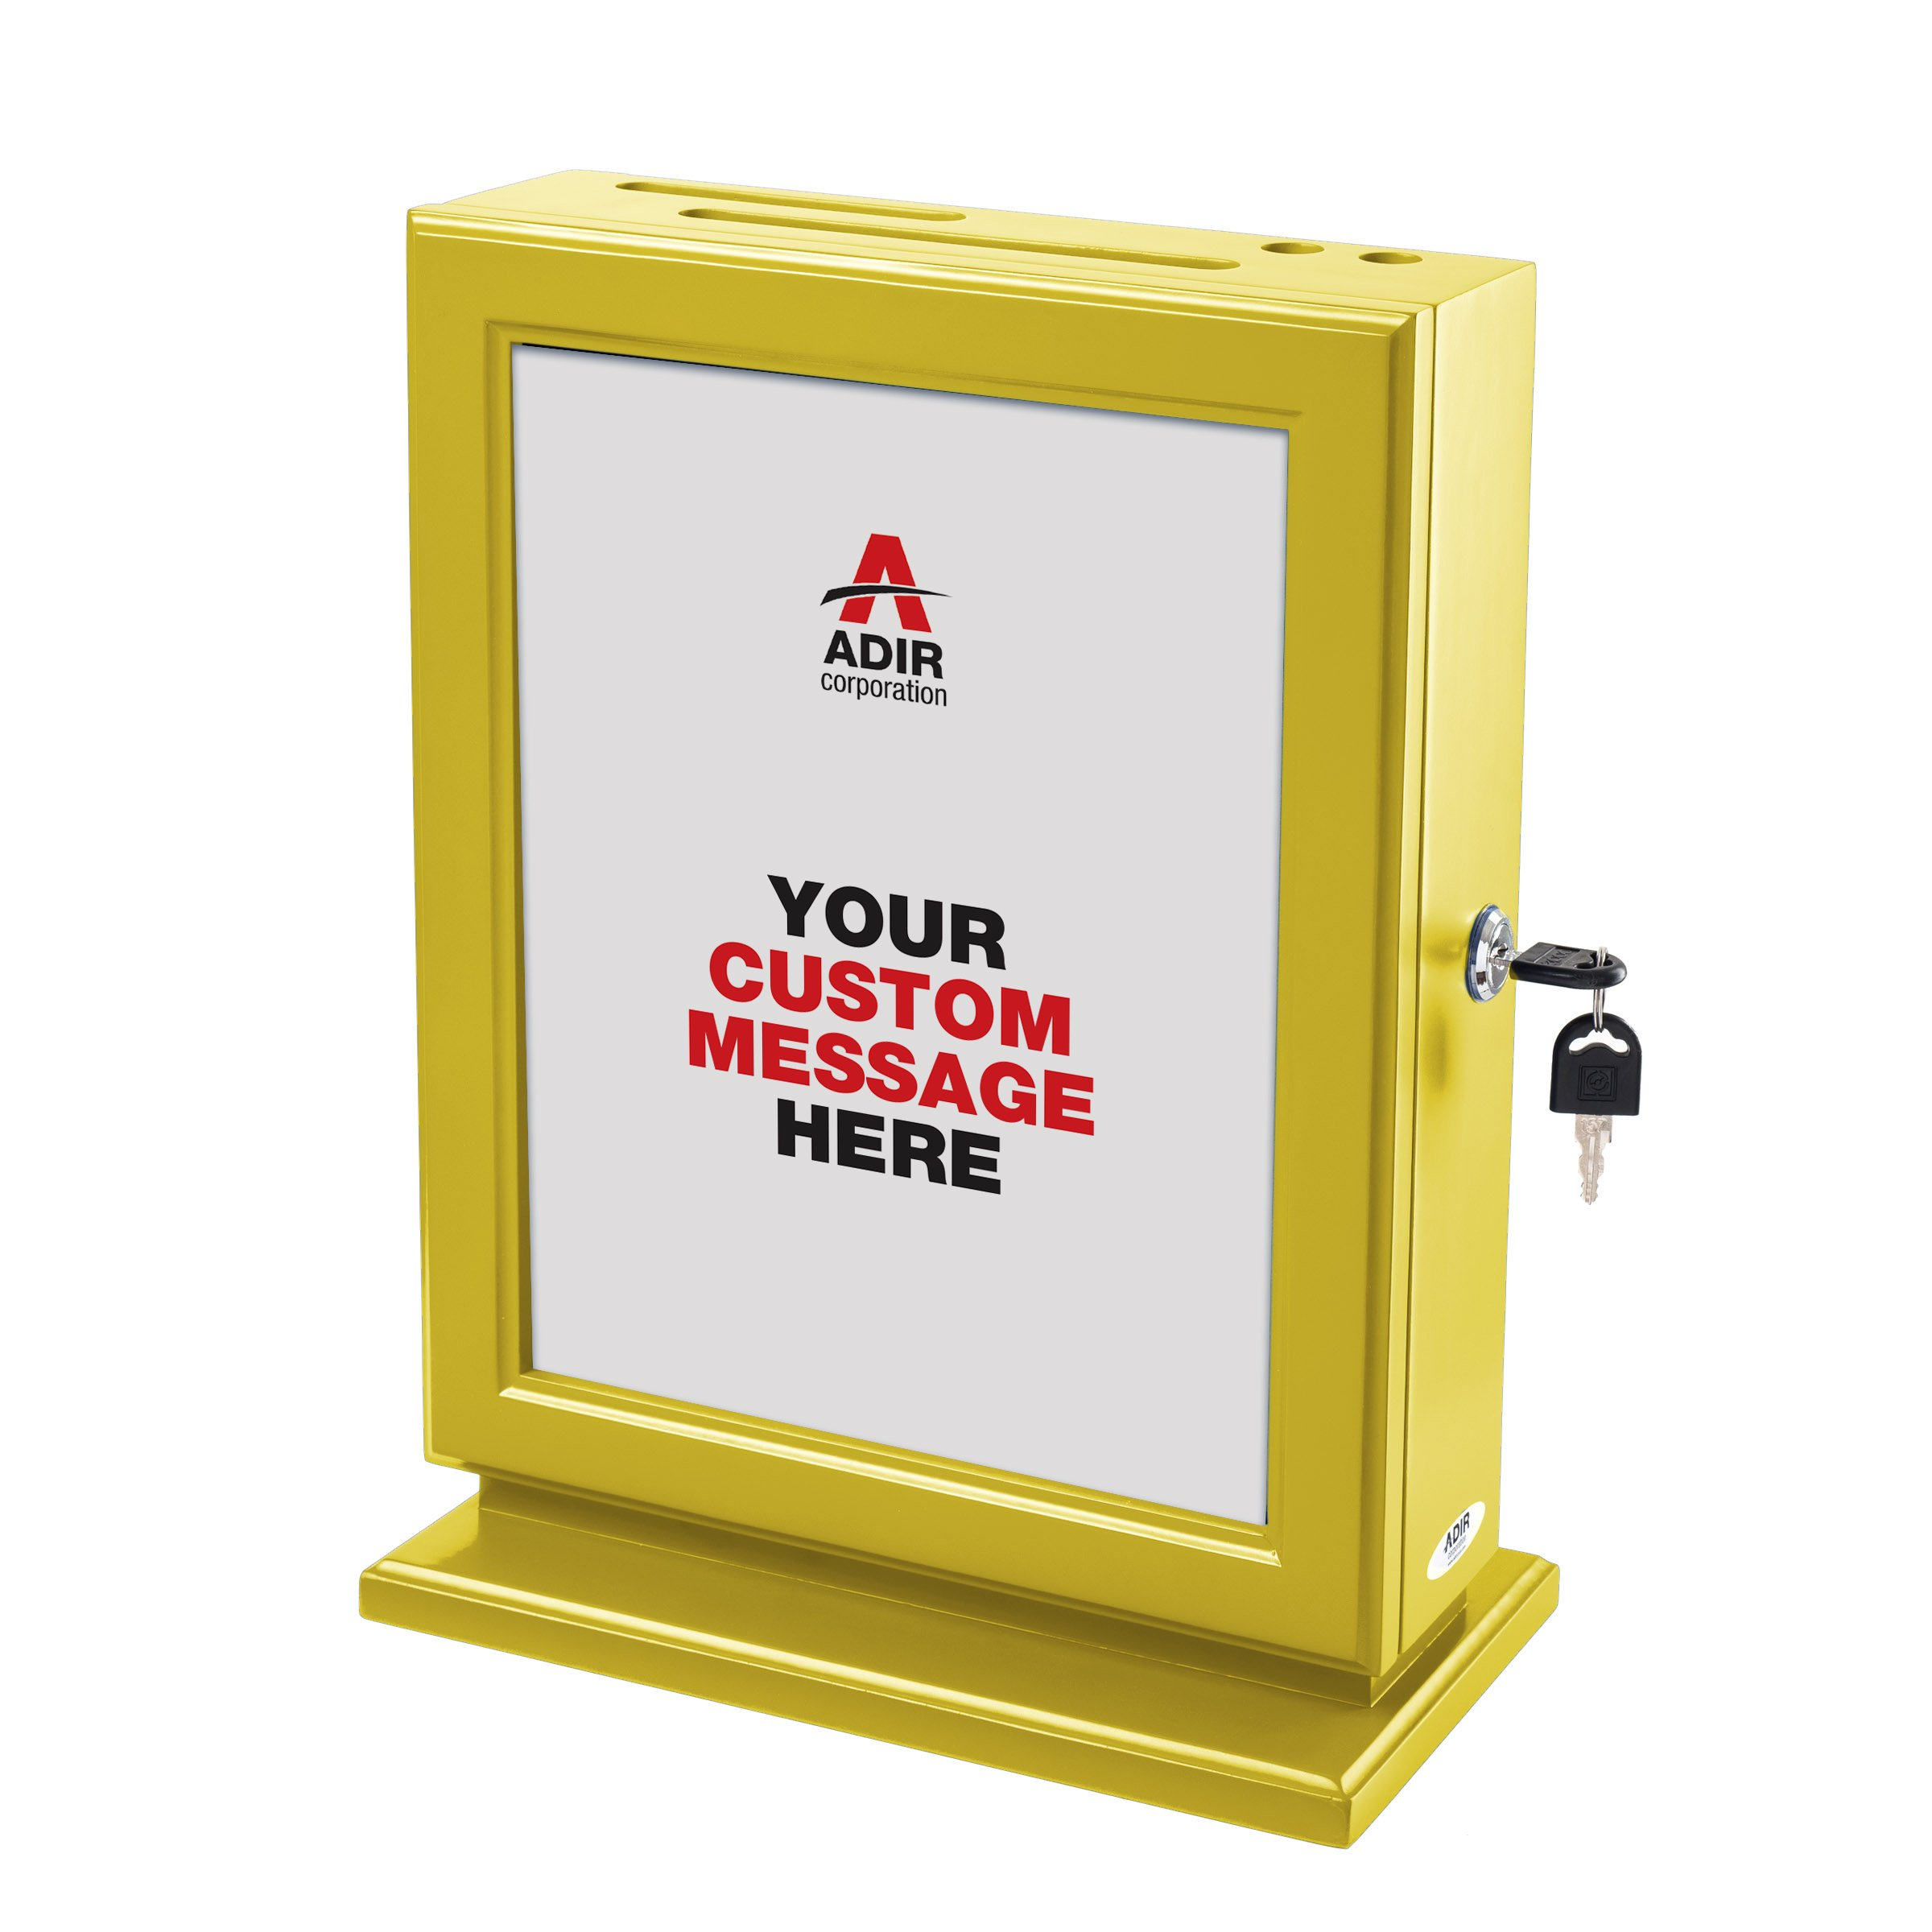 Adir Customizable Wood Suggestion Box - Yellow - with 25 Suggestion Cards